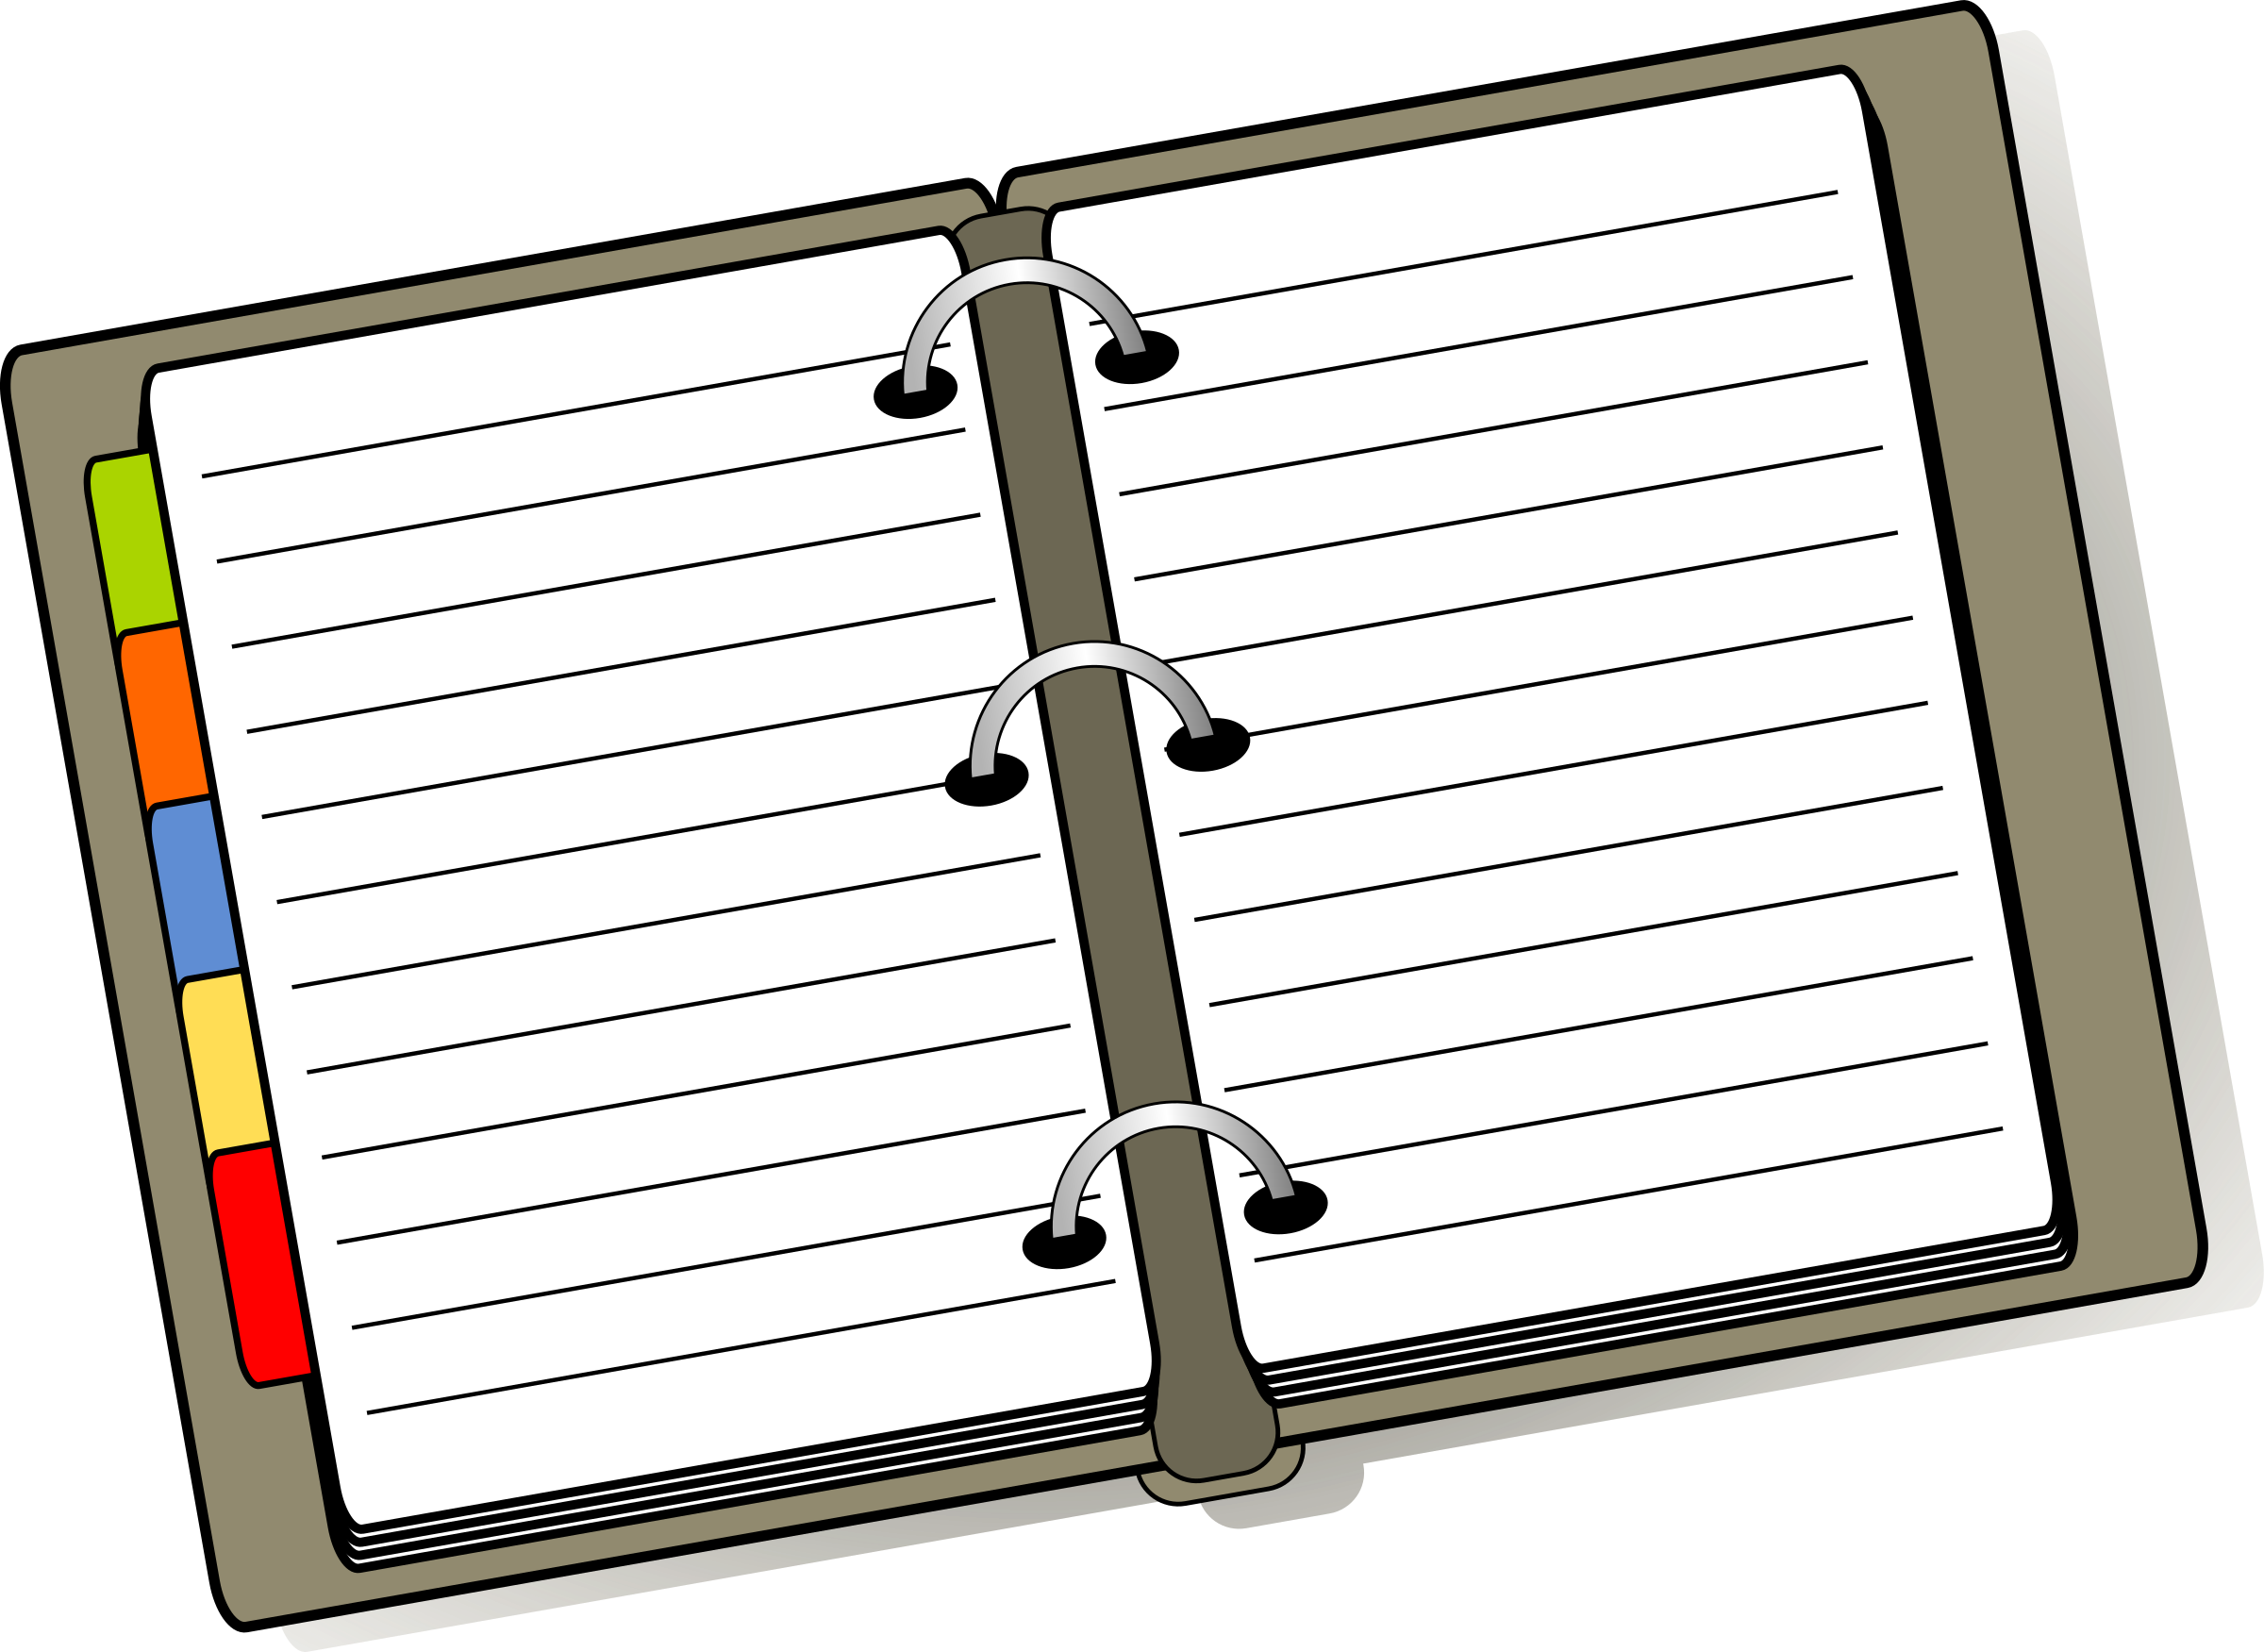 Covered clipart log book BIG IMAGE Diary Clipart (PNG)